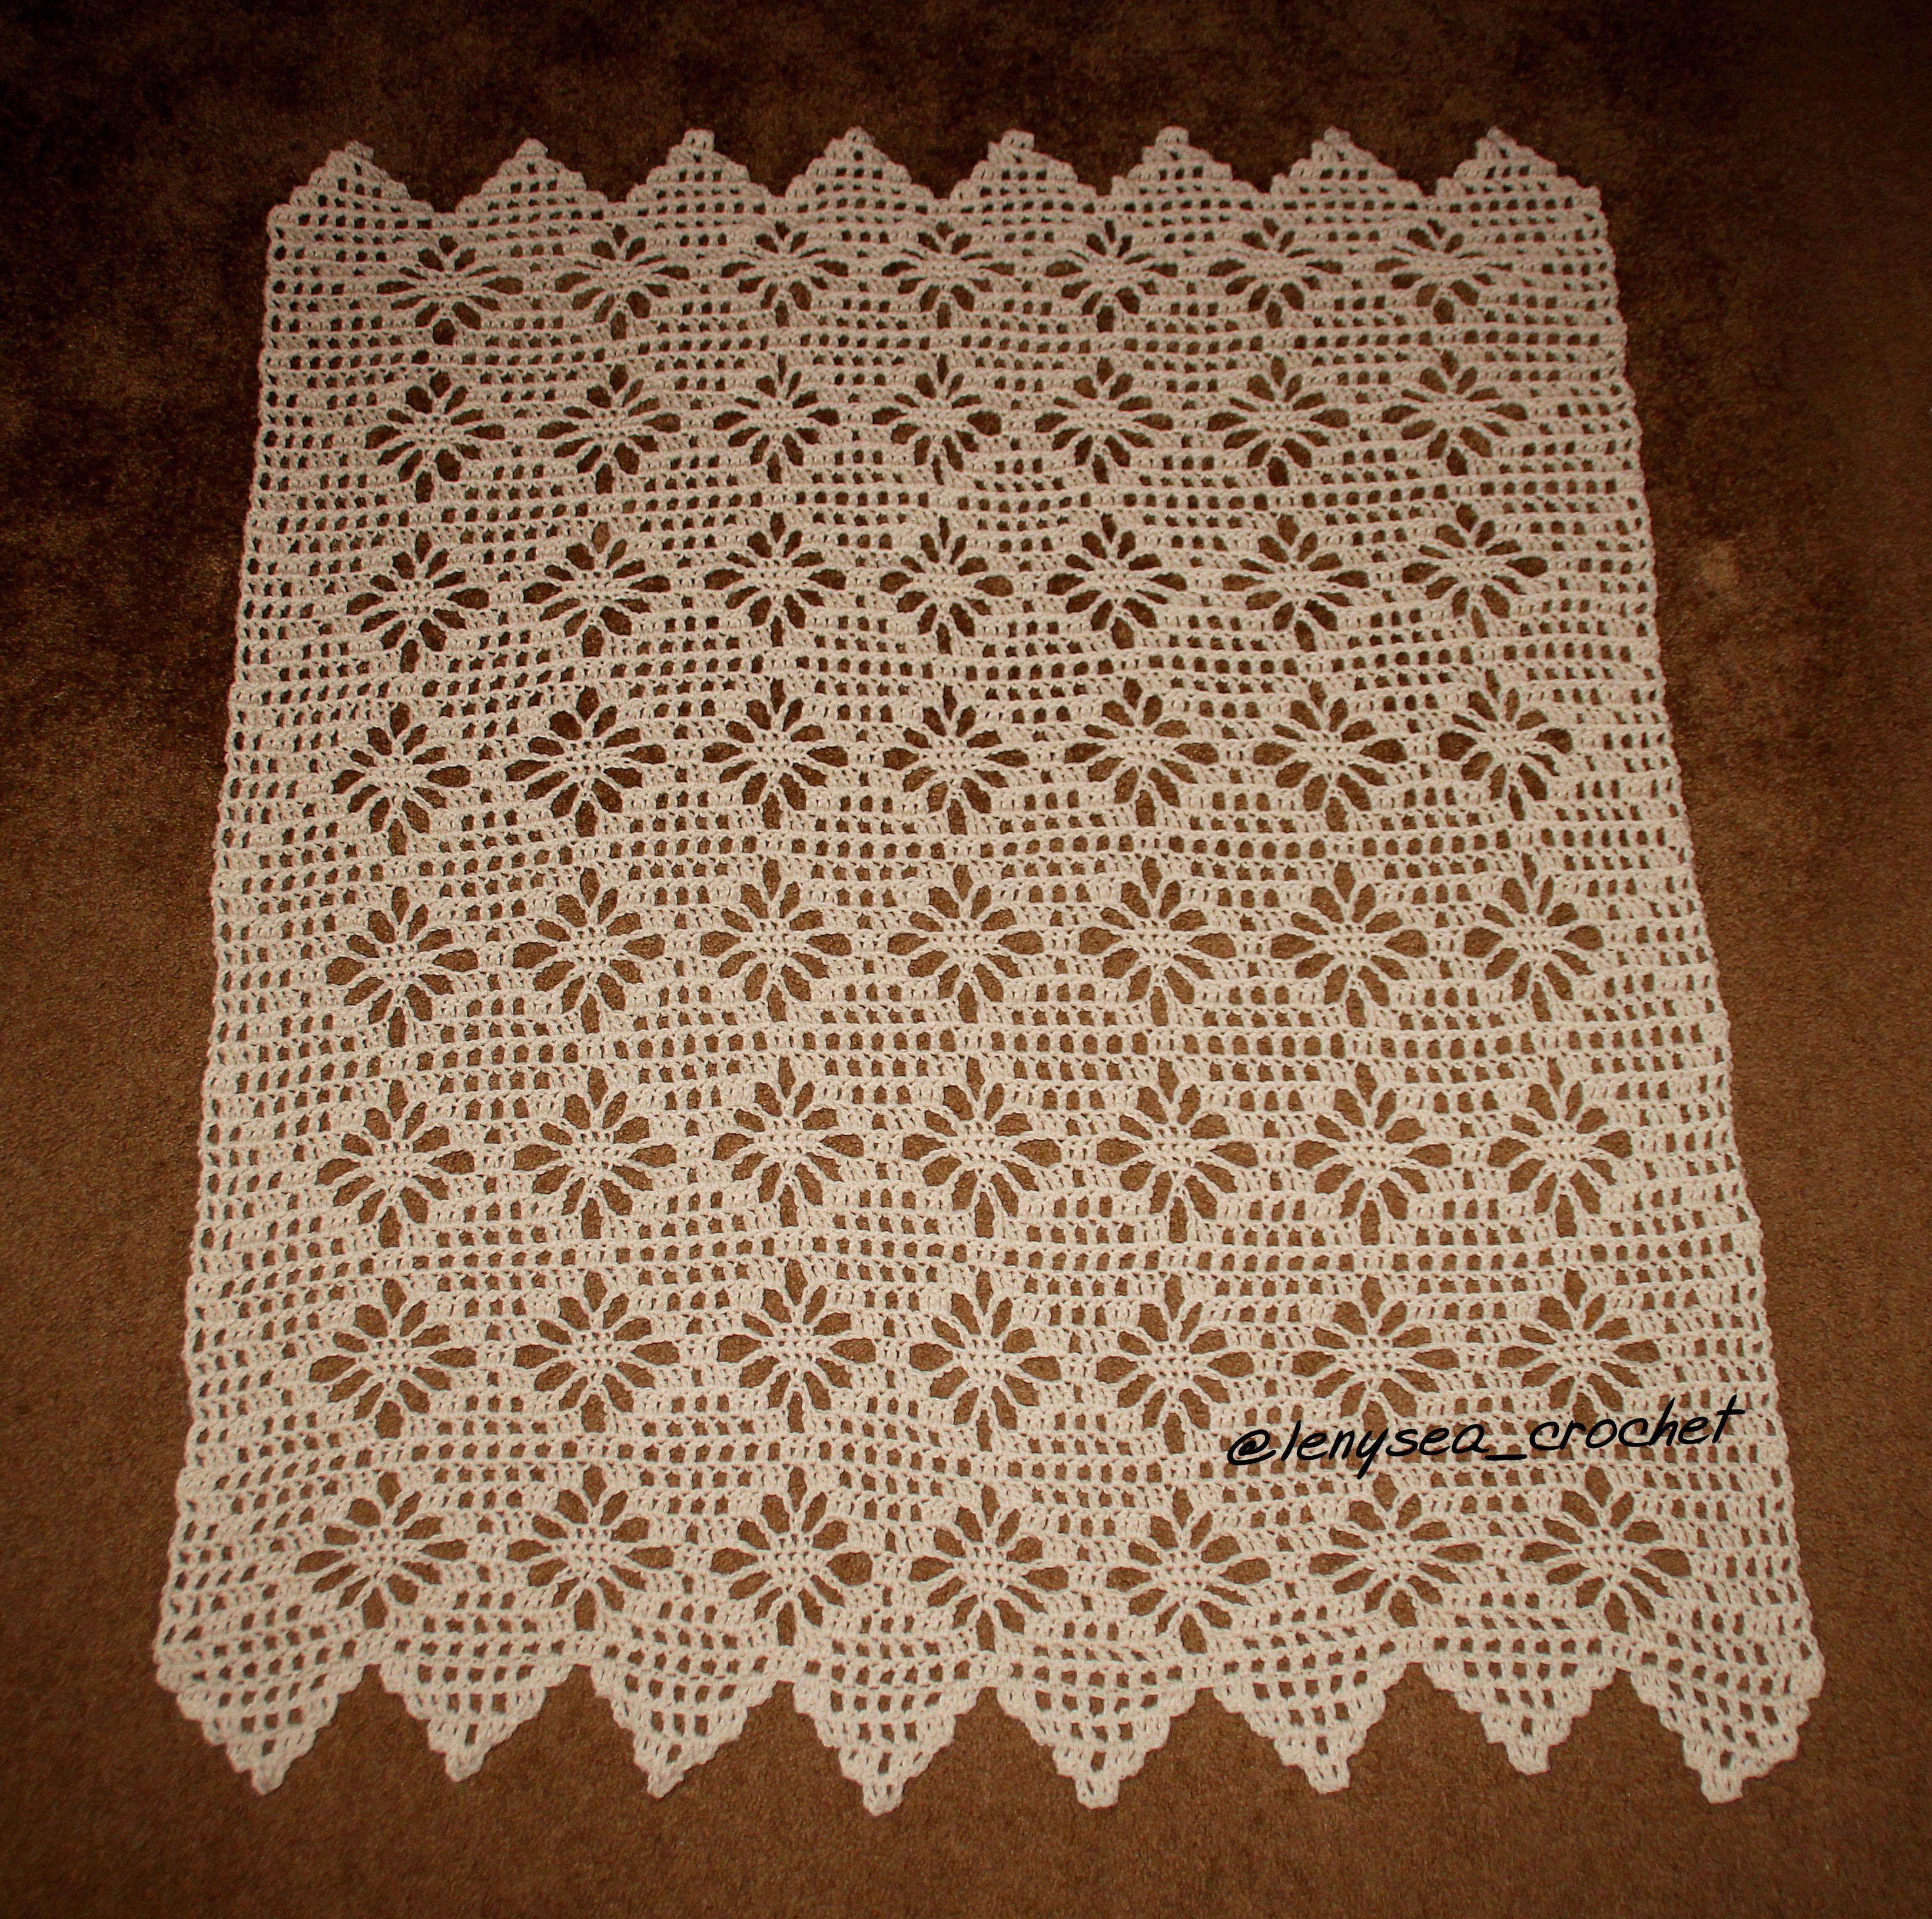 Light Lace Throw | Crochet afghan patterns, Afghan patterns and ...